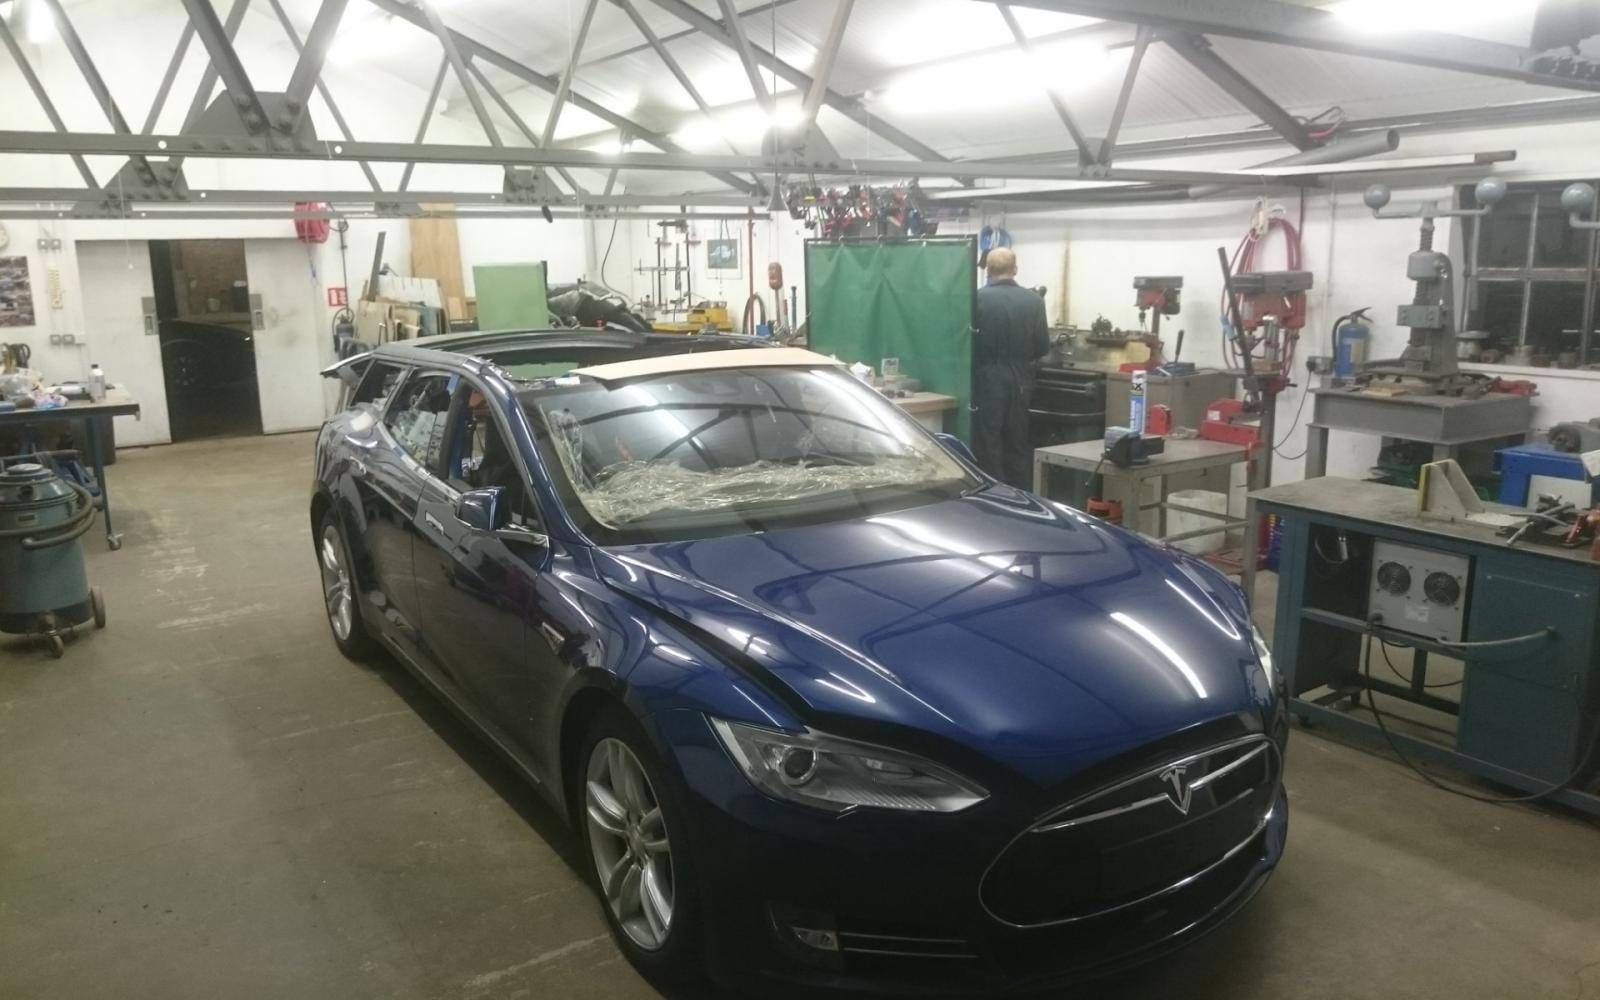 Dit is 'm: de Tesla Model S als stationwagon